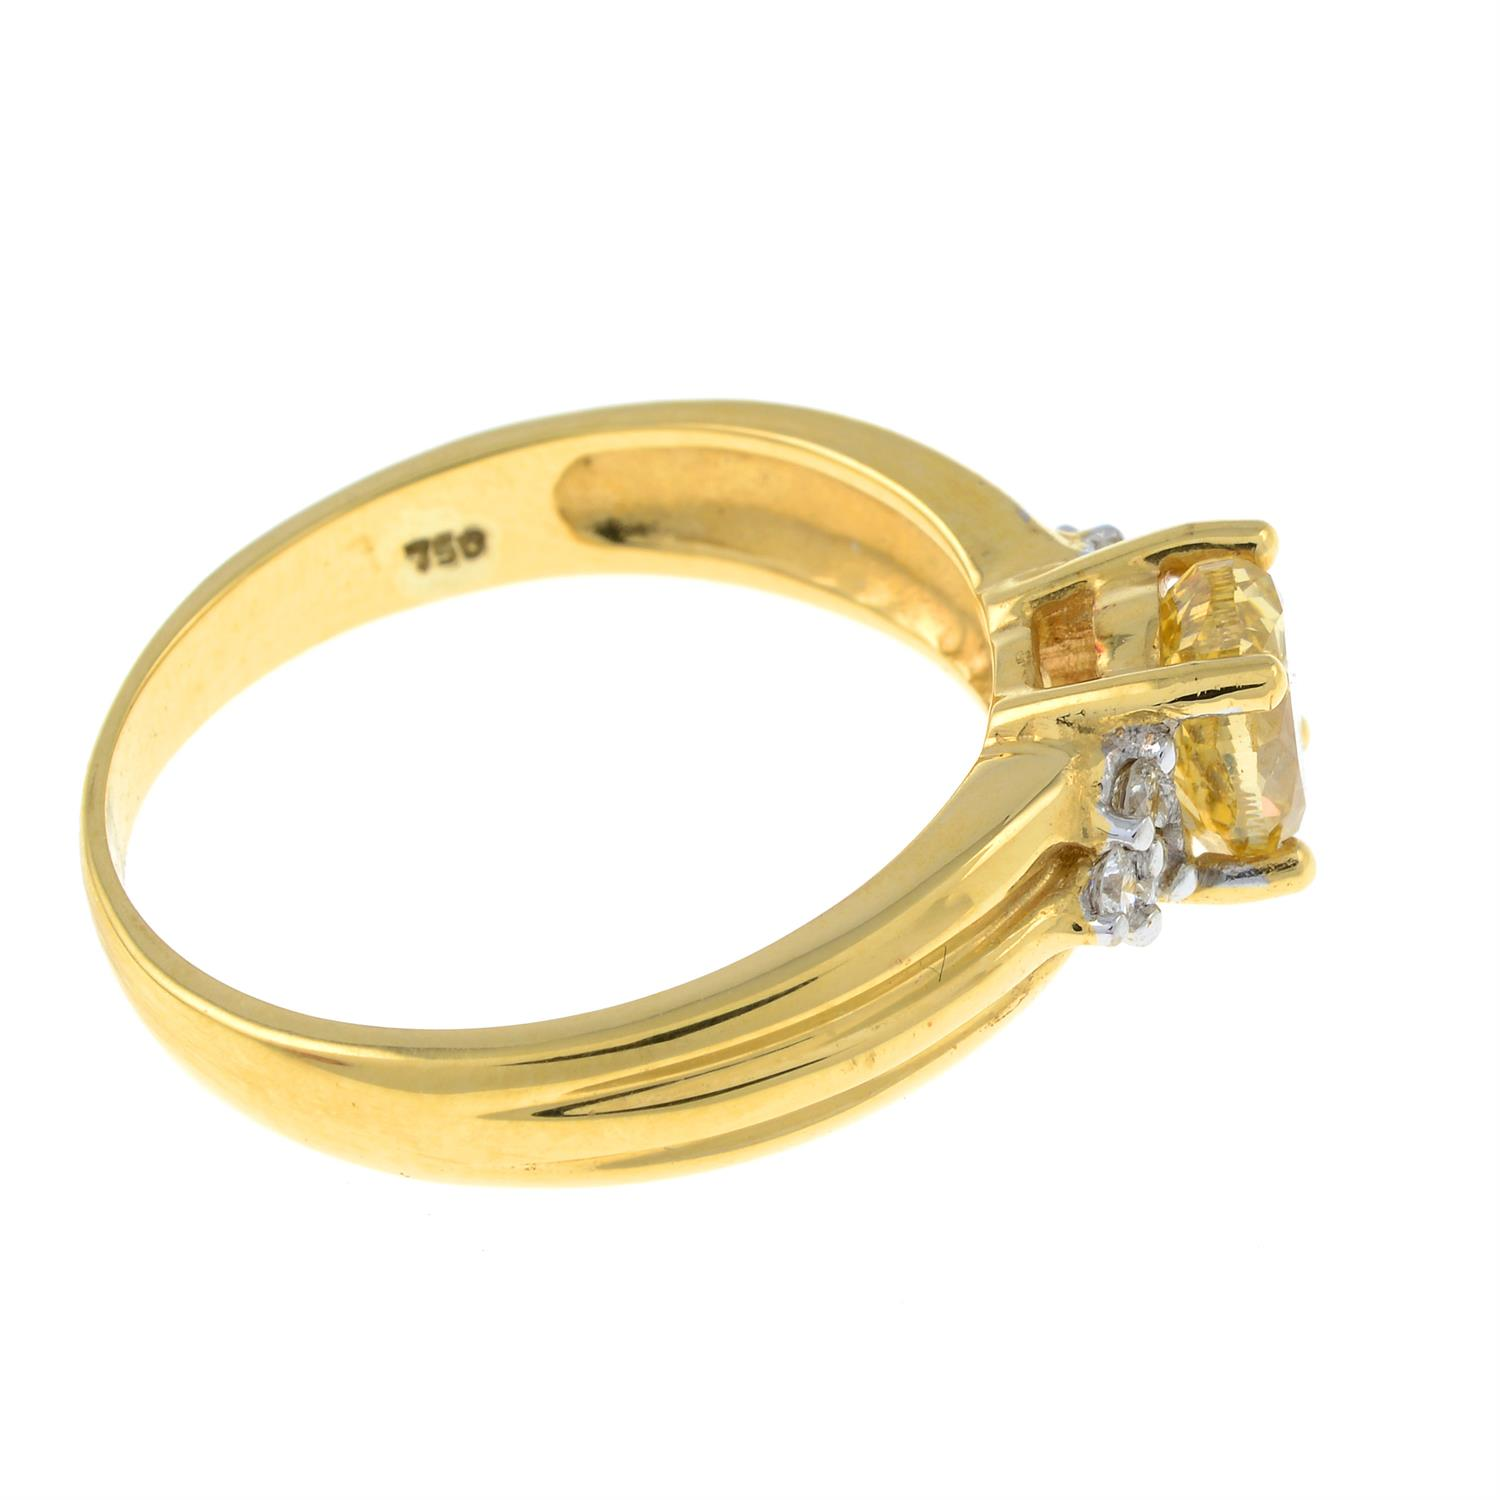 An 18ct gold oval-shape 'brownish-yellow' diamond ring, with brilliant-cut diamond trefoil sides. - Image 4 of 6